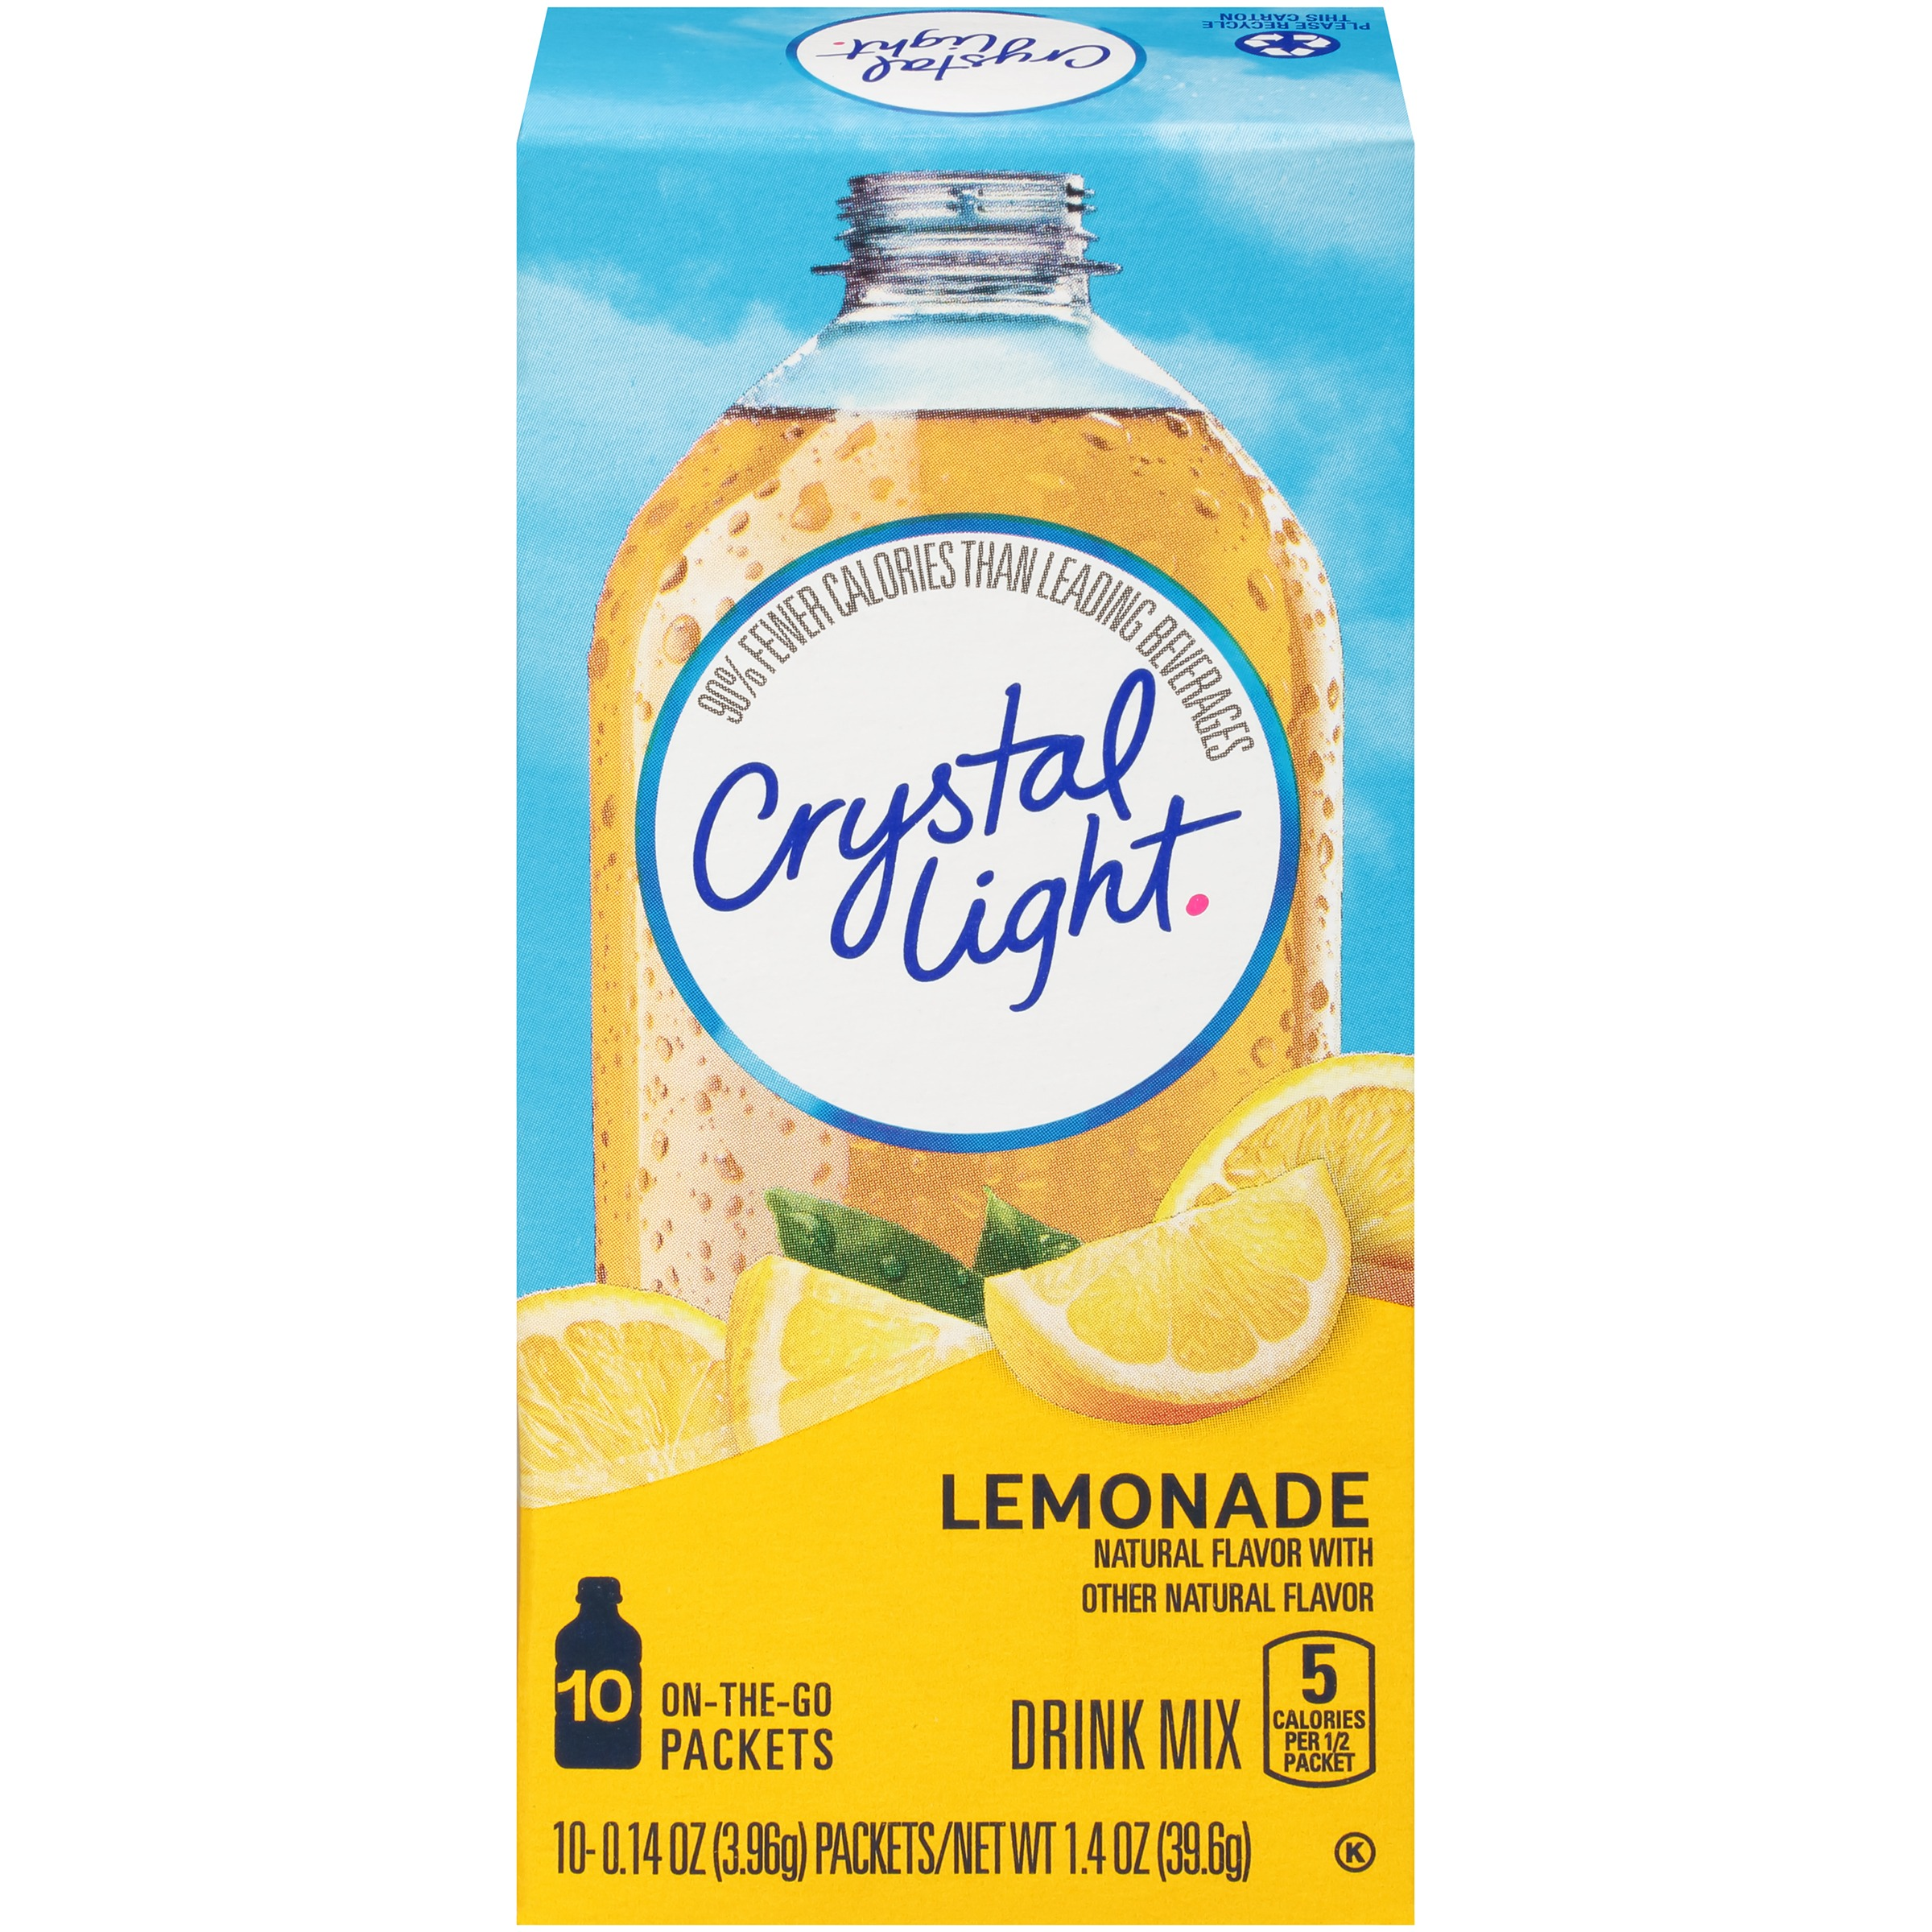 Crystal Light On-the-Go Lemonade Drink Mix 10 ct Box